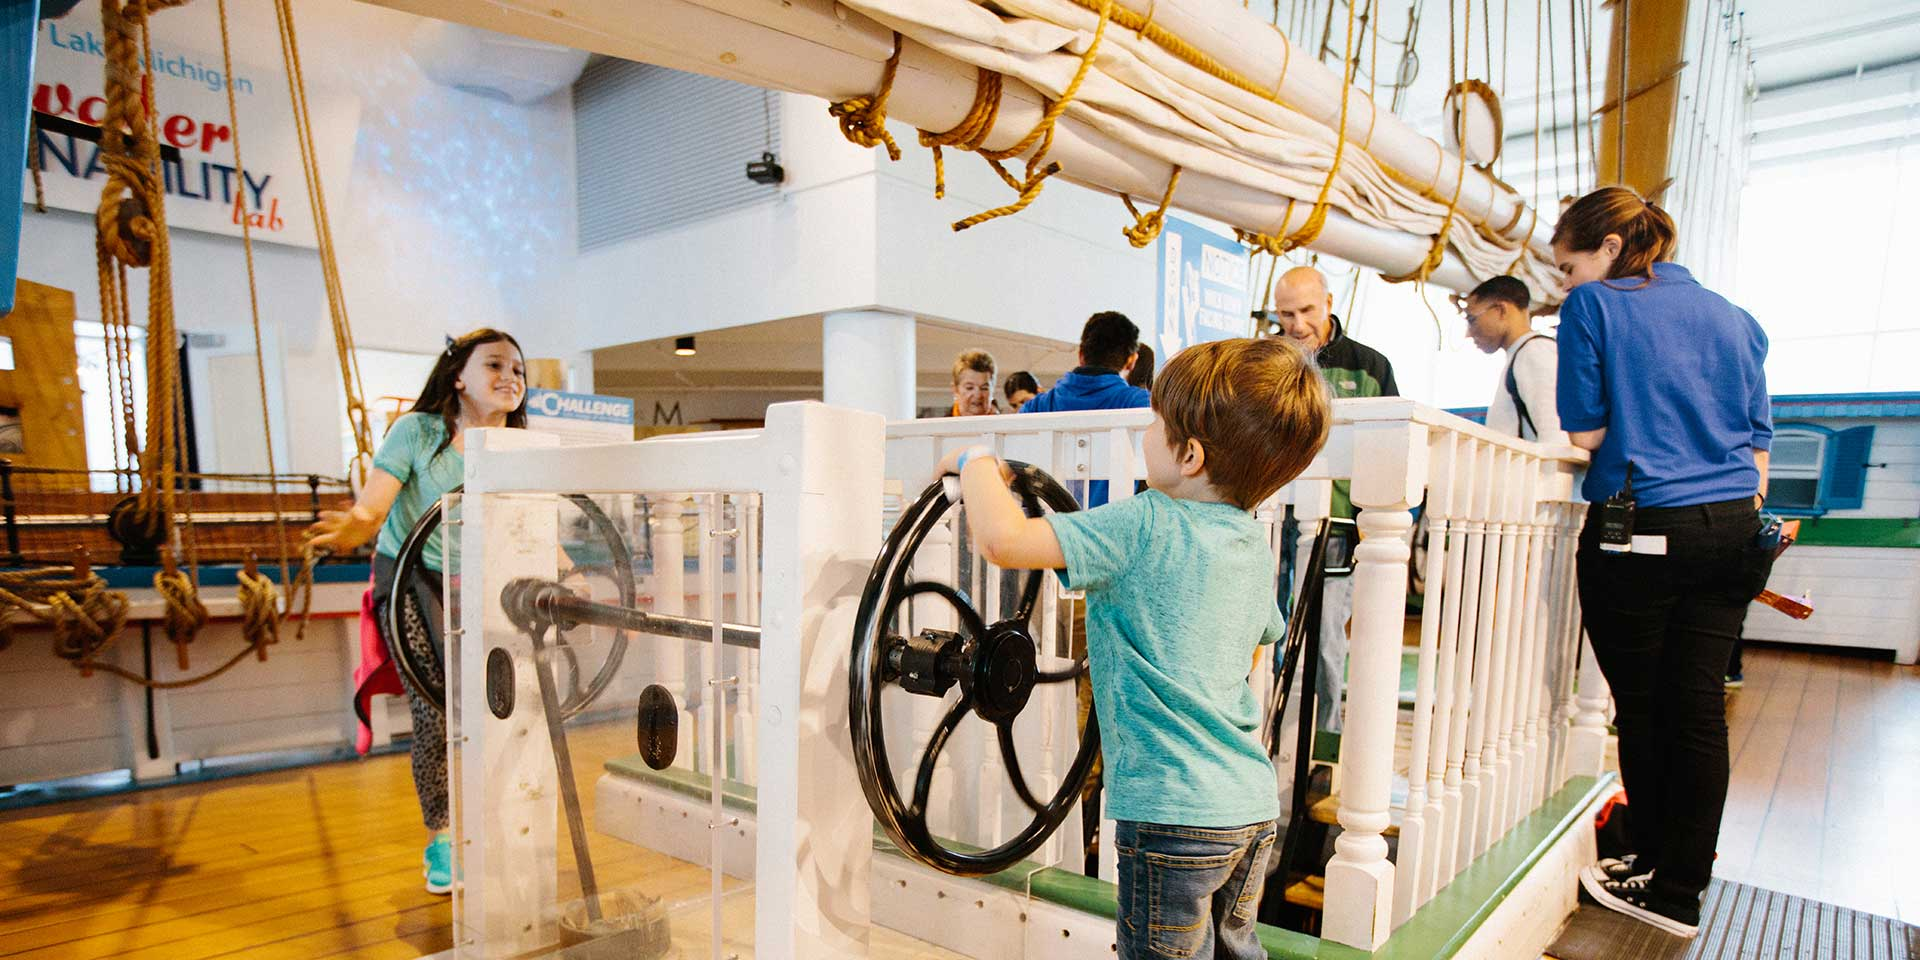 The Challenge at Discovery World